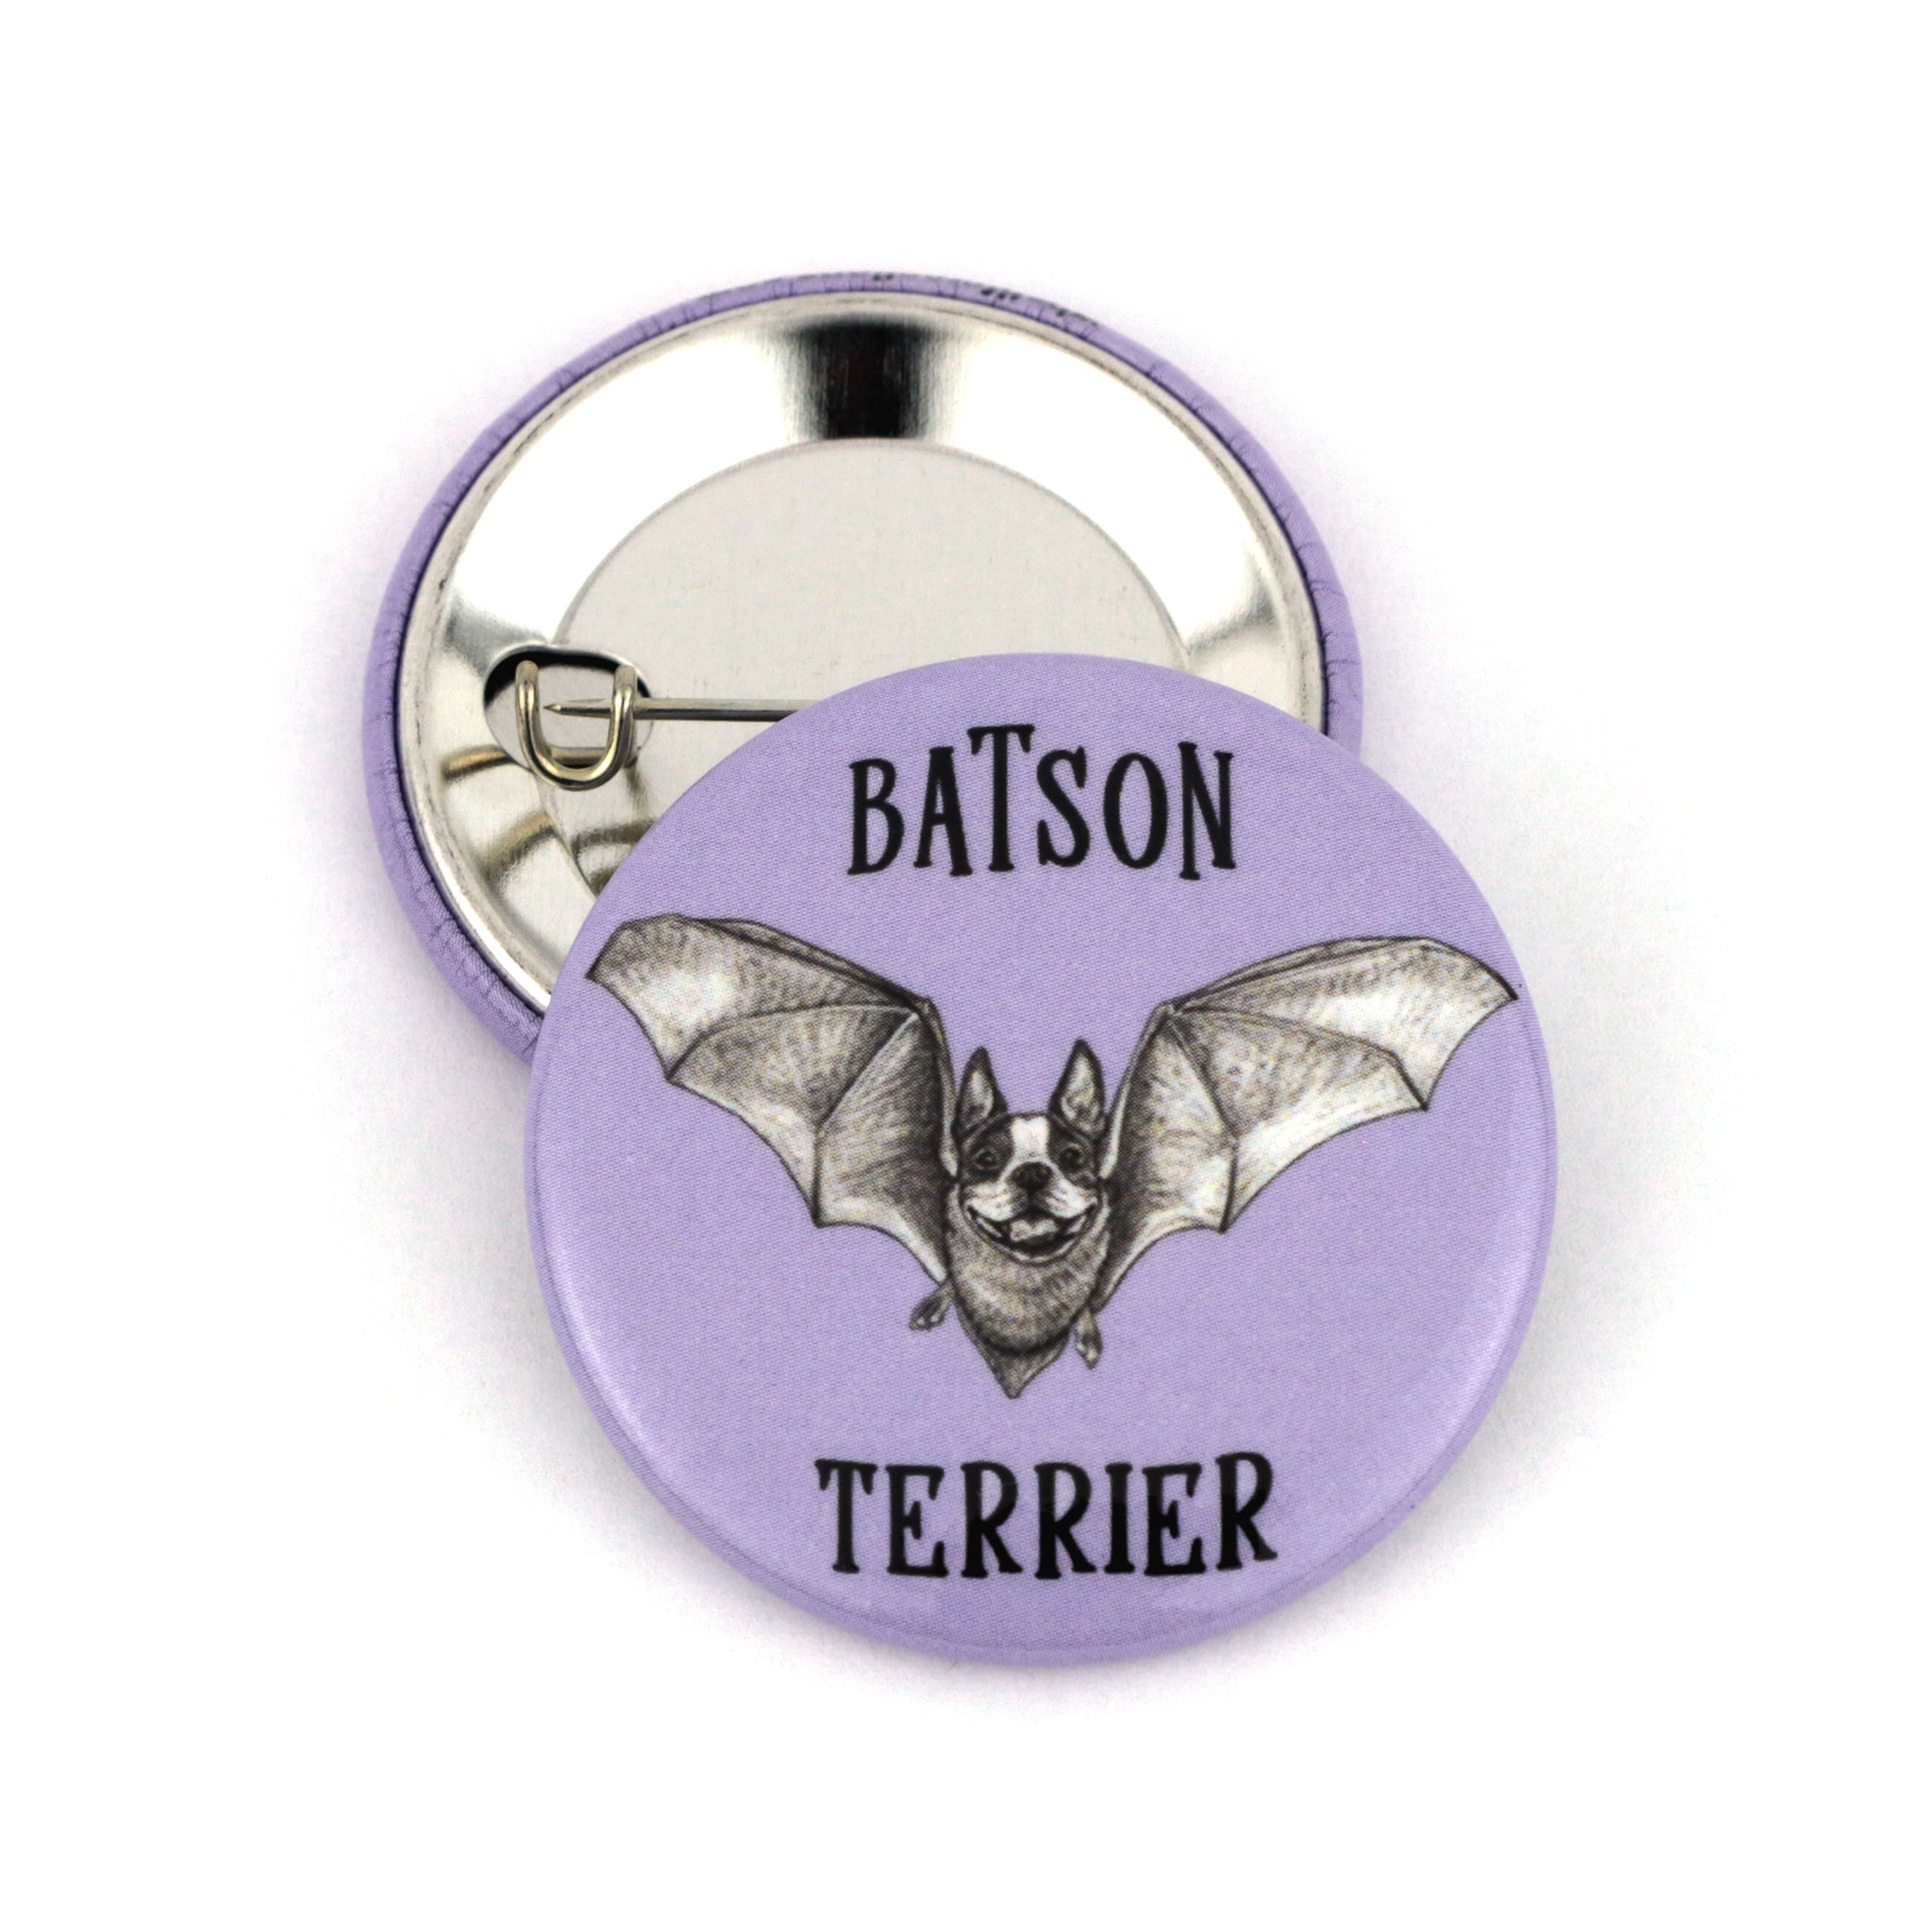 "Batson Terrier 1.5"" Pinback Button"